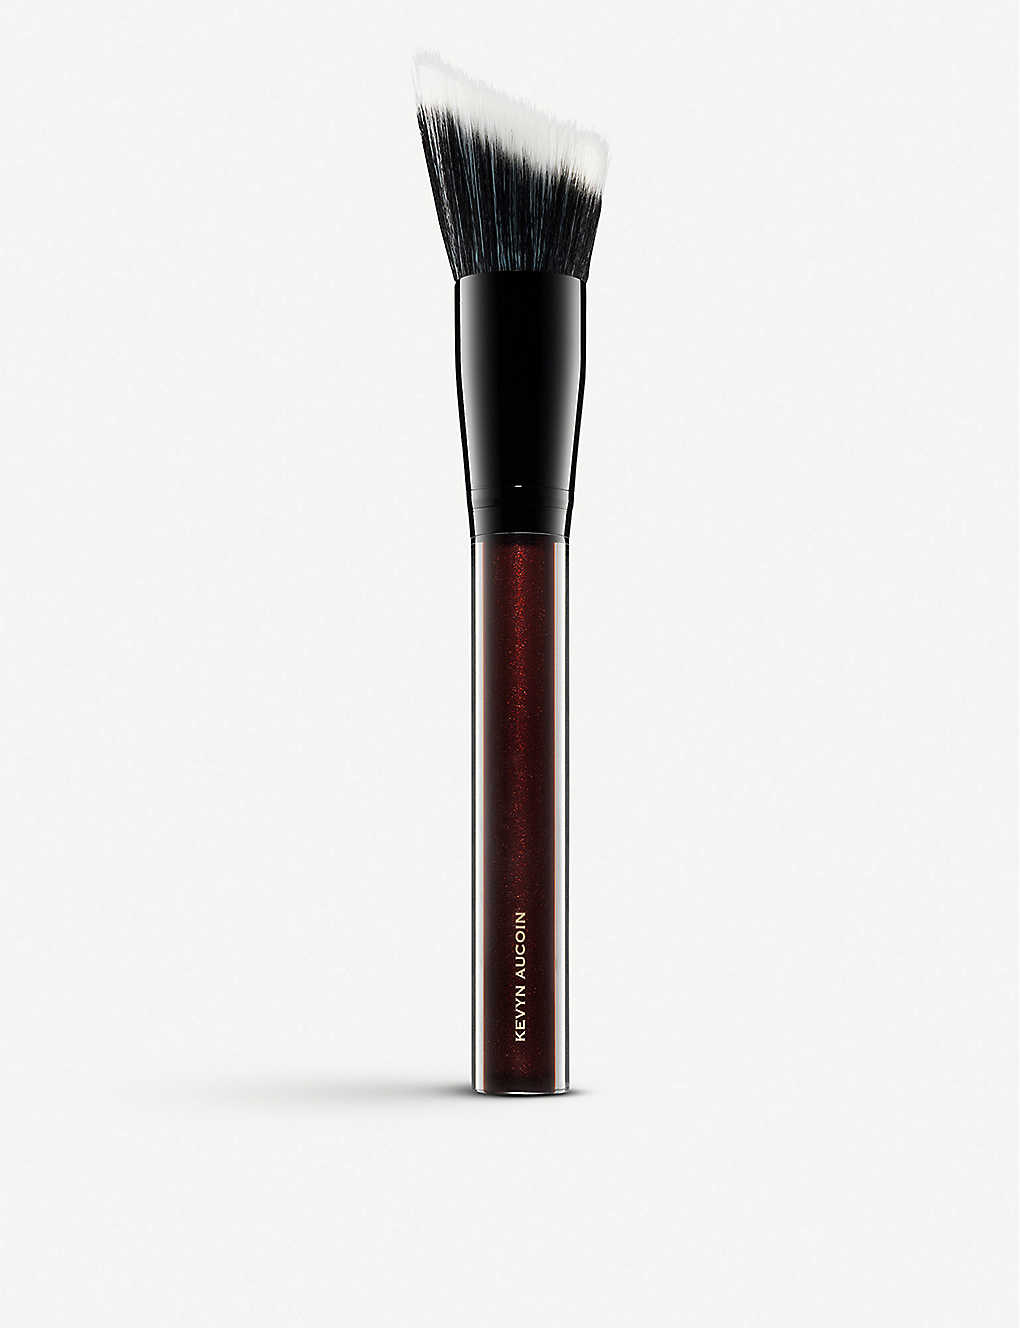 KEVYN AUCOIN: The Neo Powder Brush